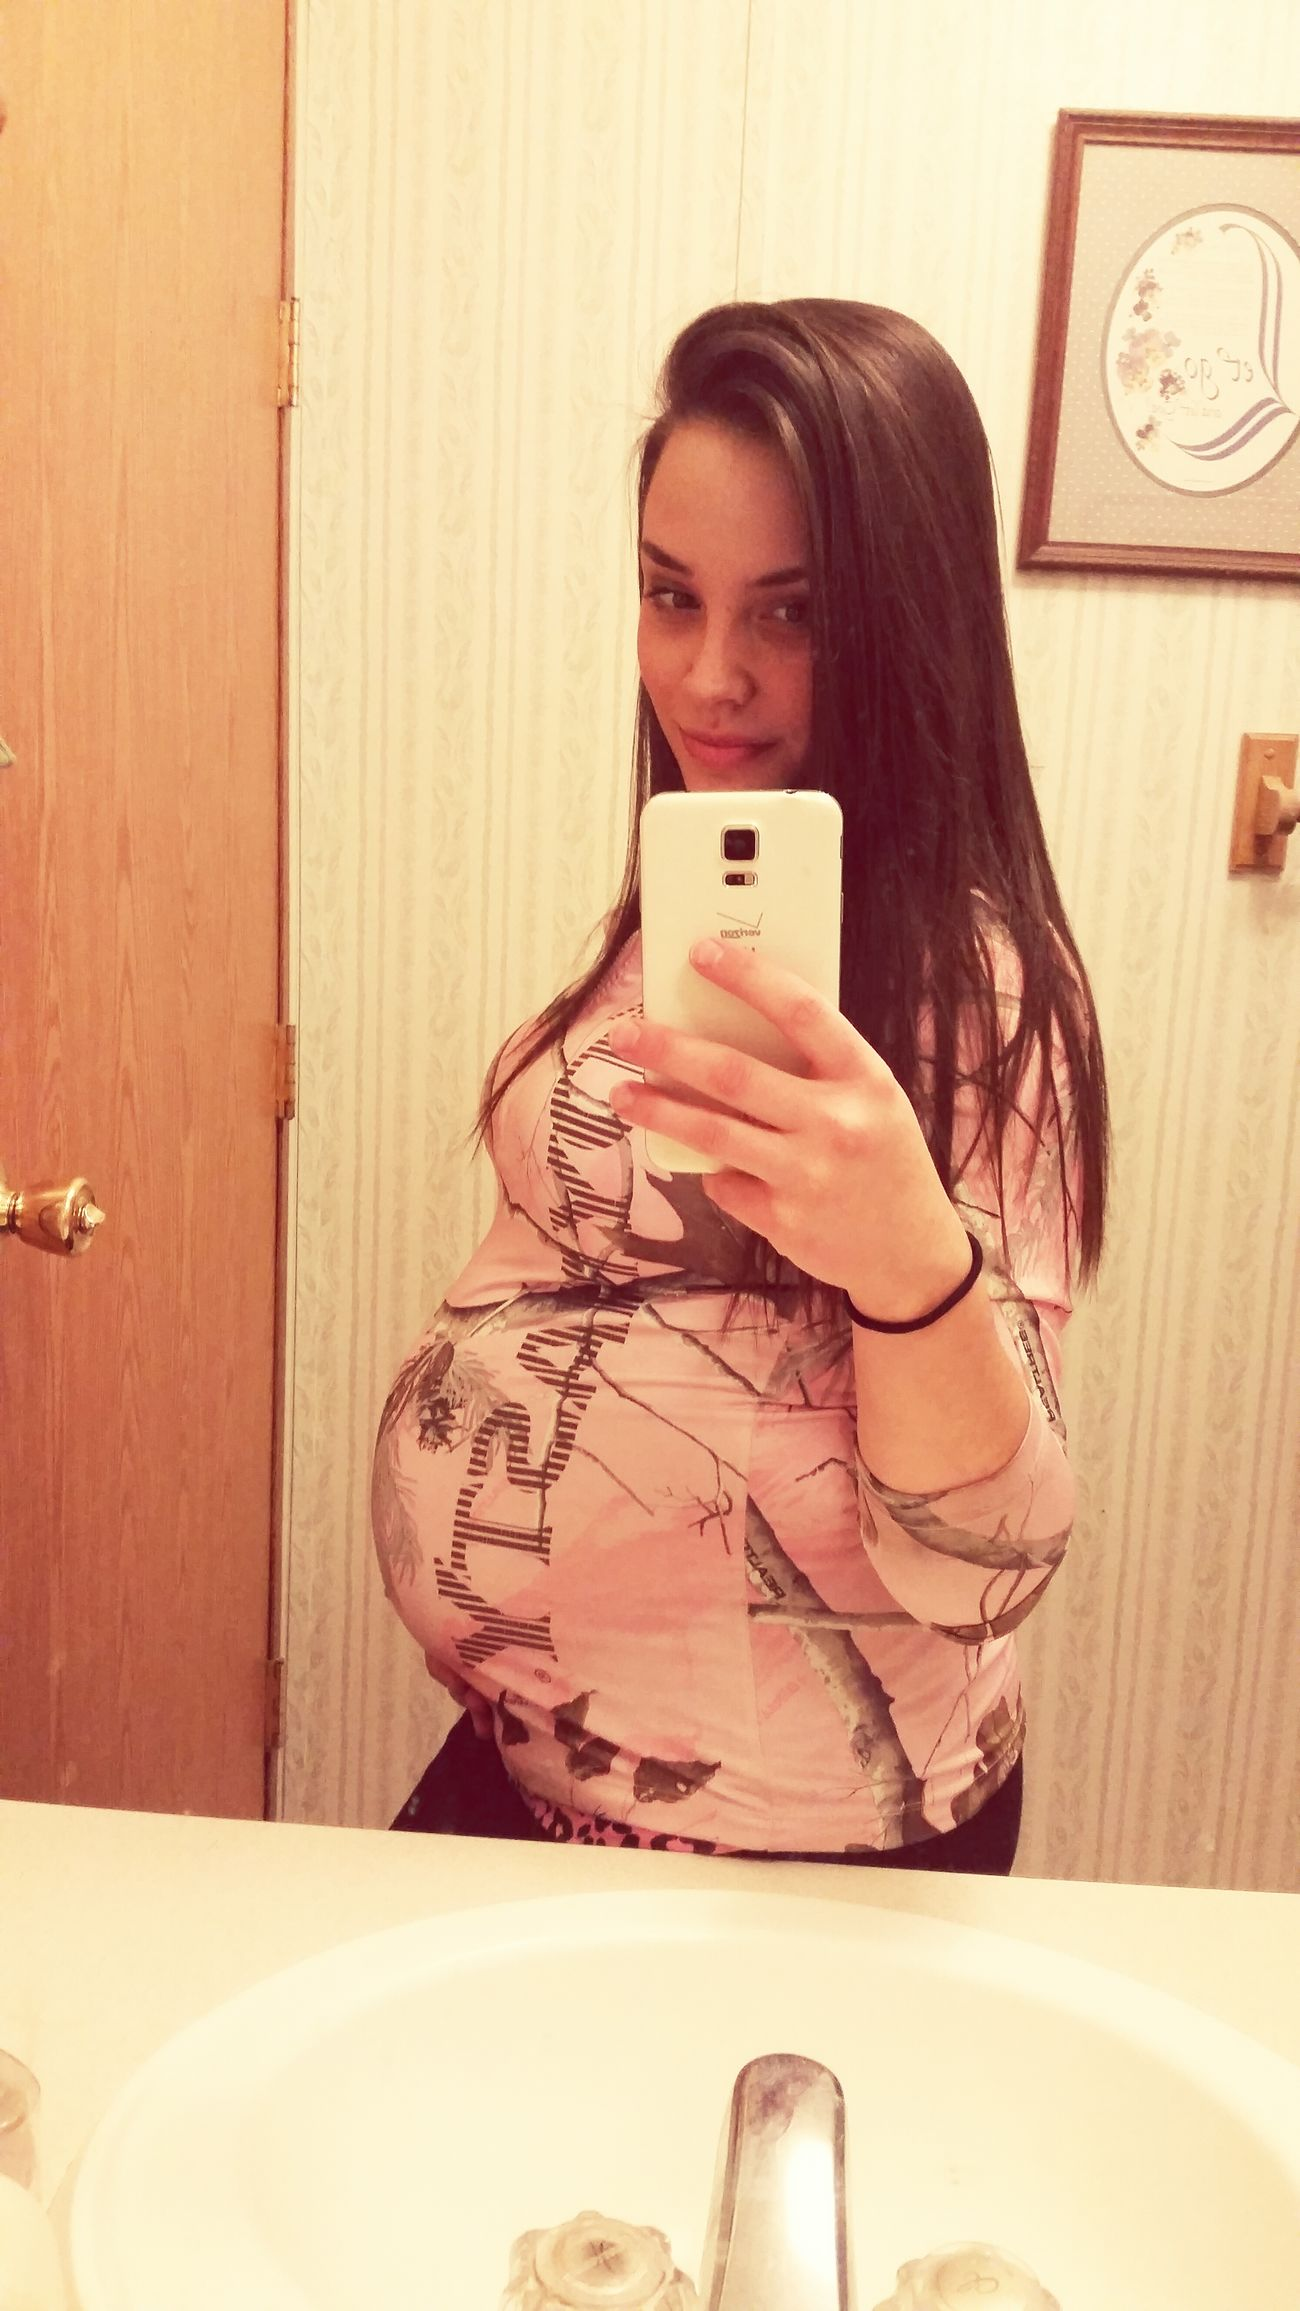 35 Weeks  Baby Bump Enjoying Life I'm Going #selfie Craaazy... Bambino